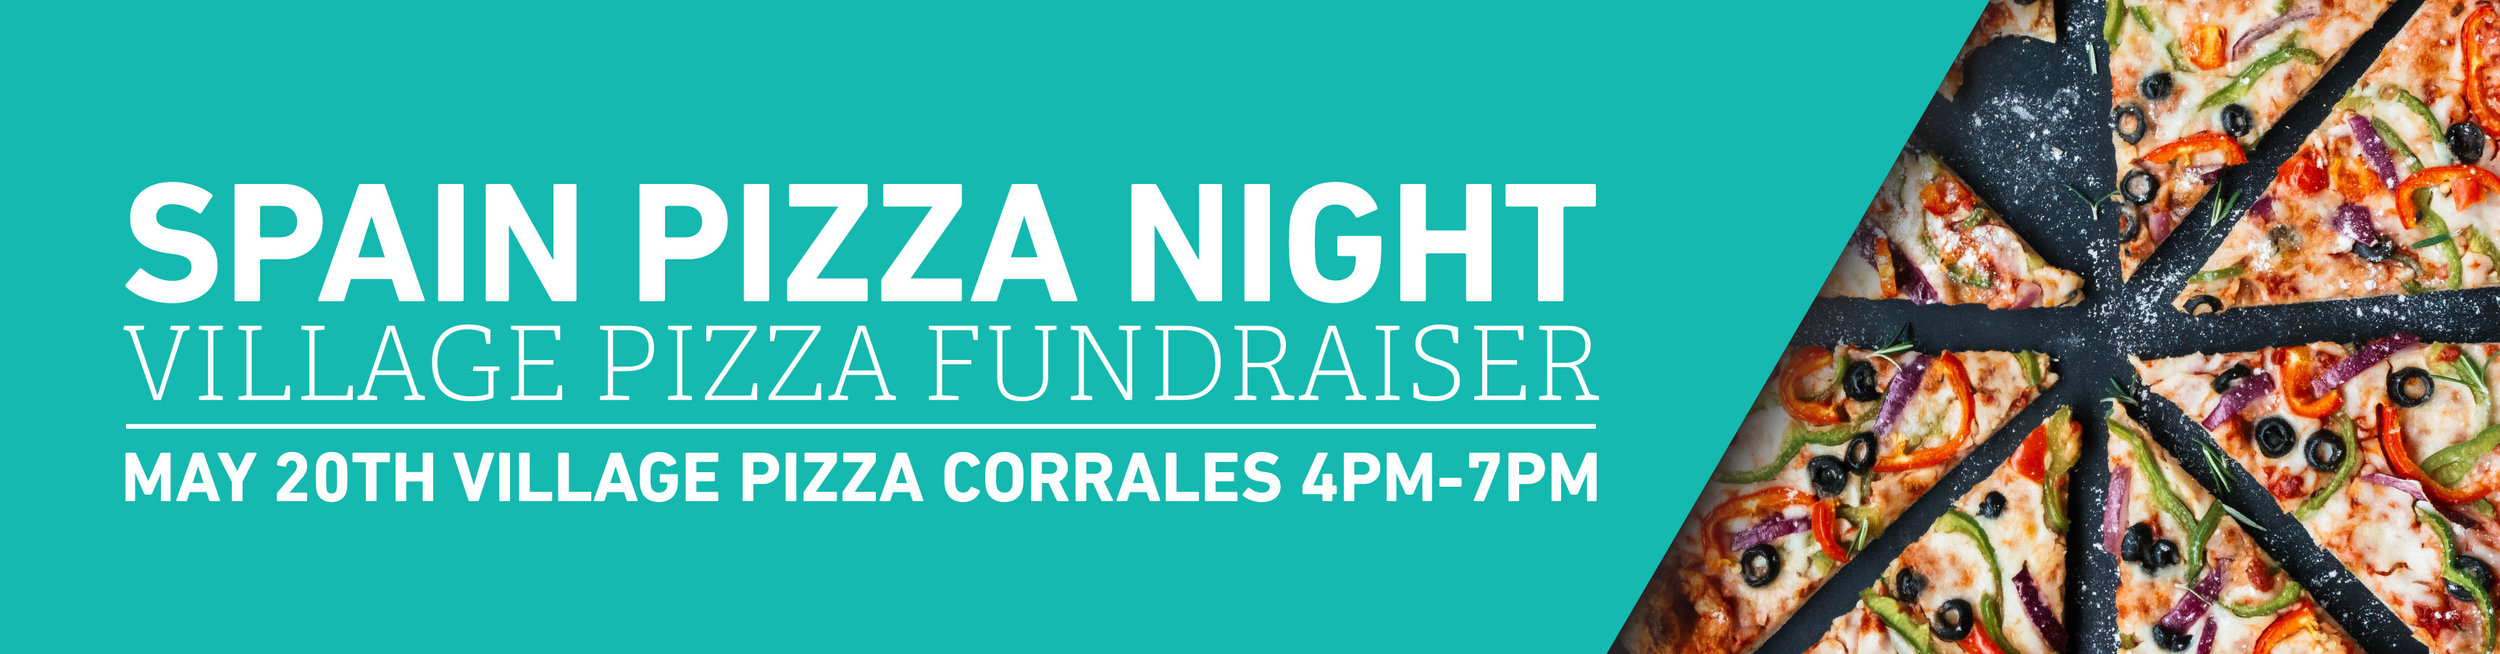 Village Pizza is hosting a fundraiser for the Spain Team! $15 per adult for all you can eat pizza buffet Kids are standard pricing Spain gets the excess and a percentage from the night. Plan your family dinner and help the Spain Team get closer to their goals!  May 20, 2018 4pm - 7pm Village Pizza Corrales